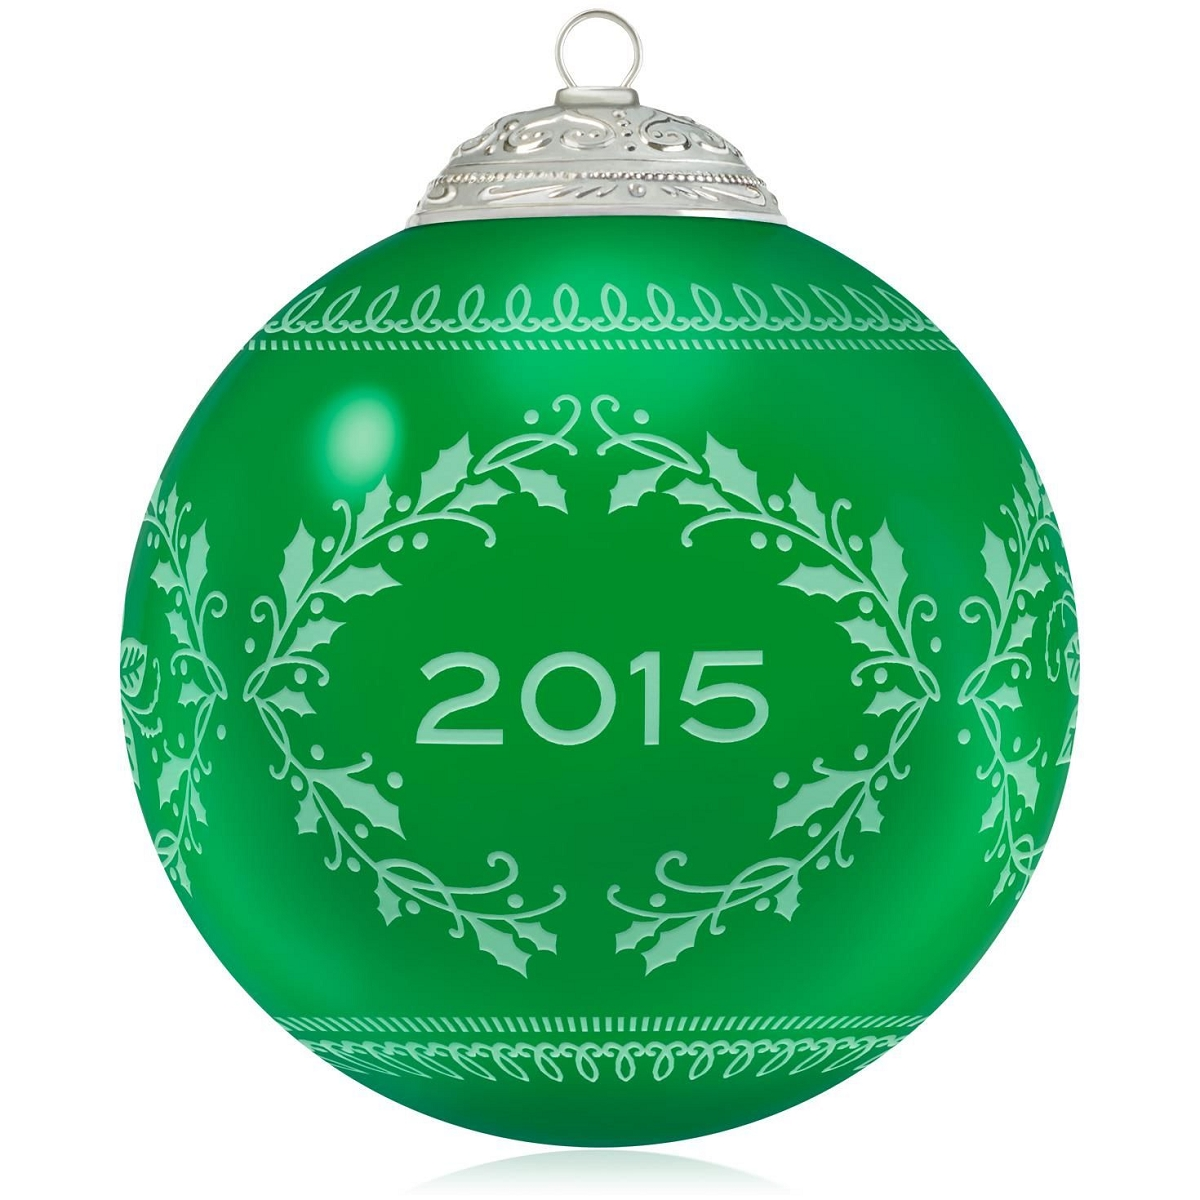 Christmas commemorative ball hallmark keepsake